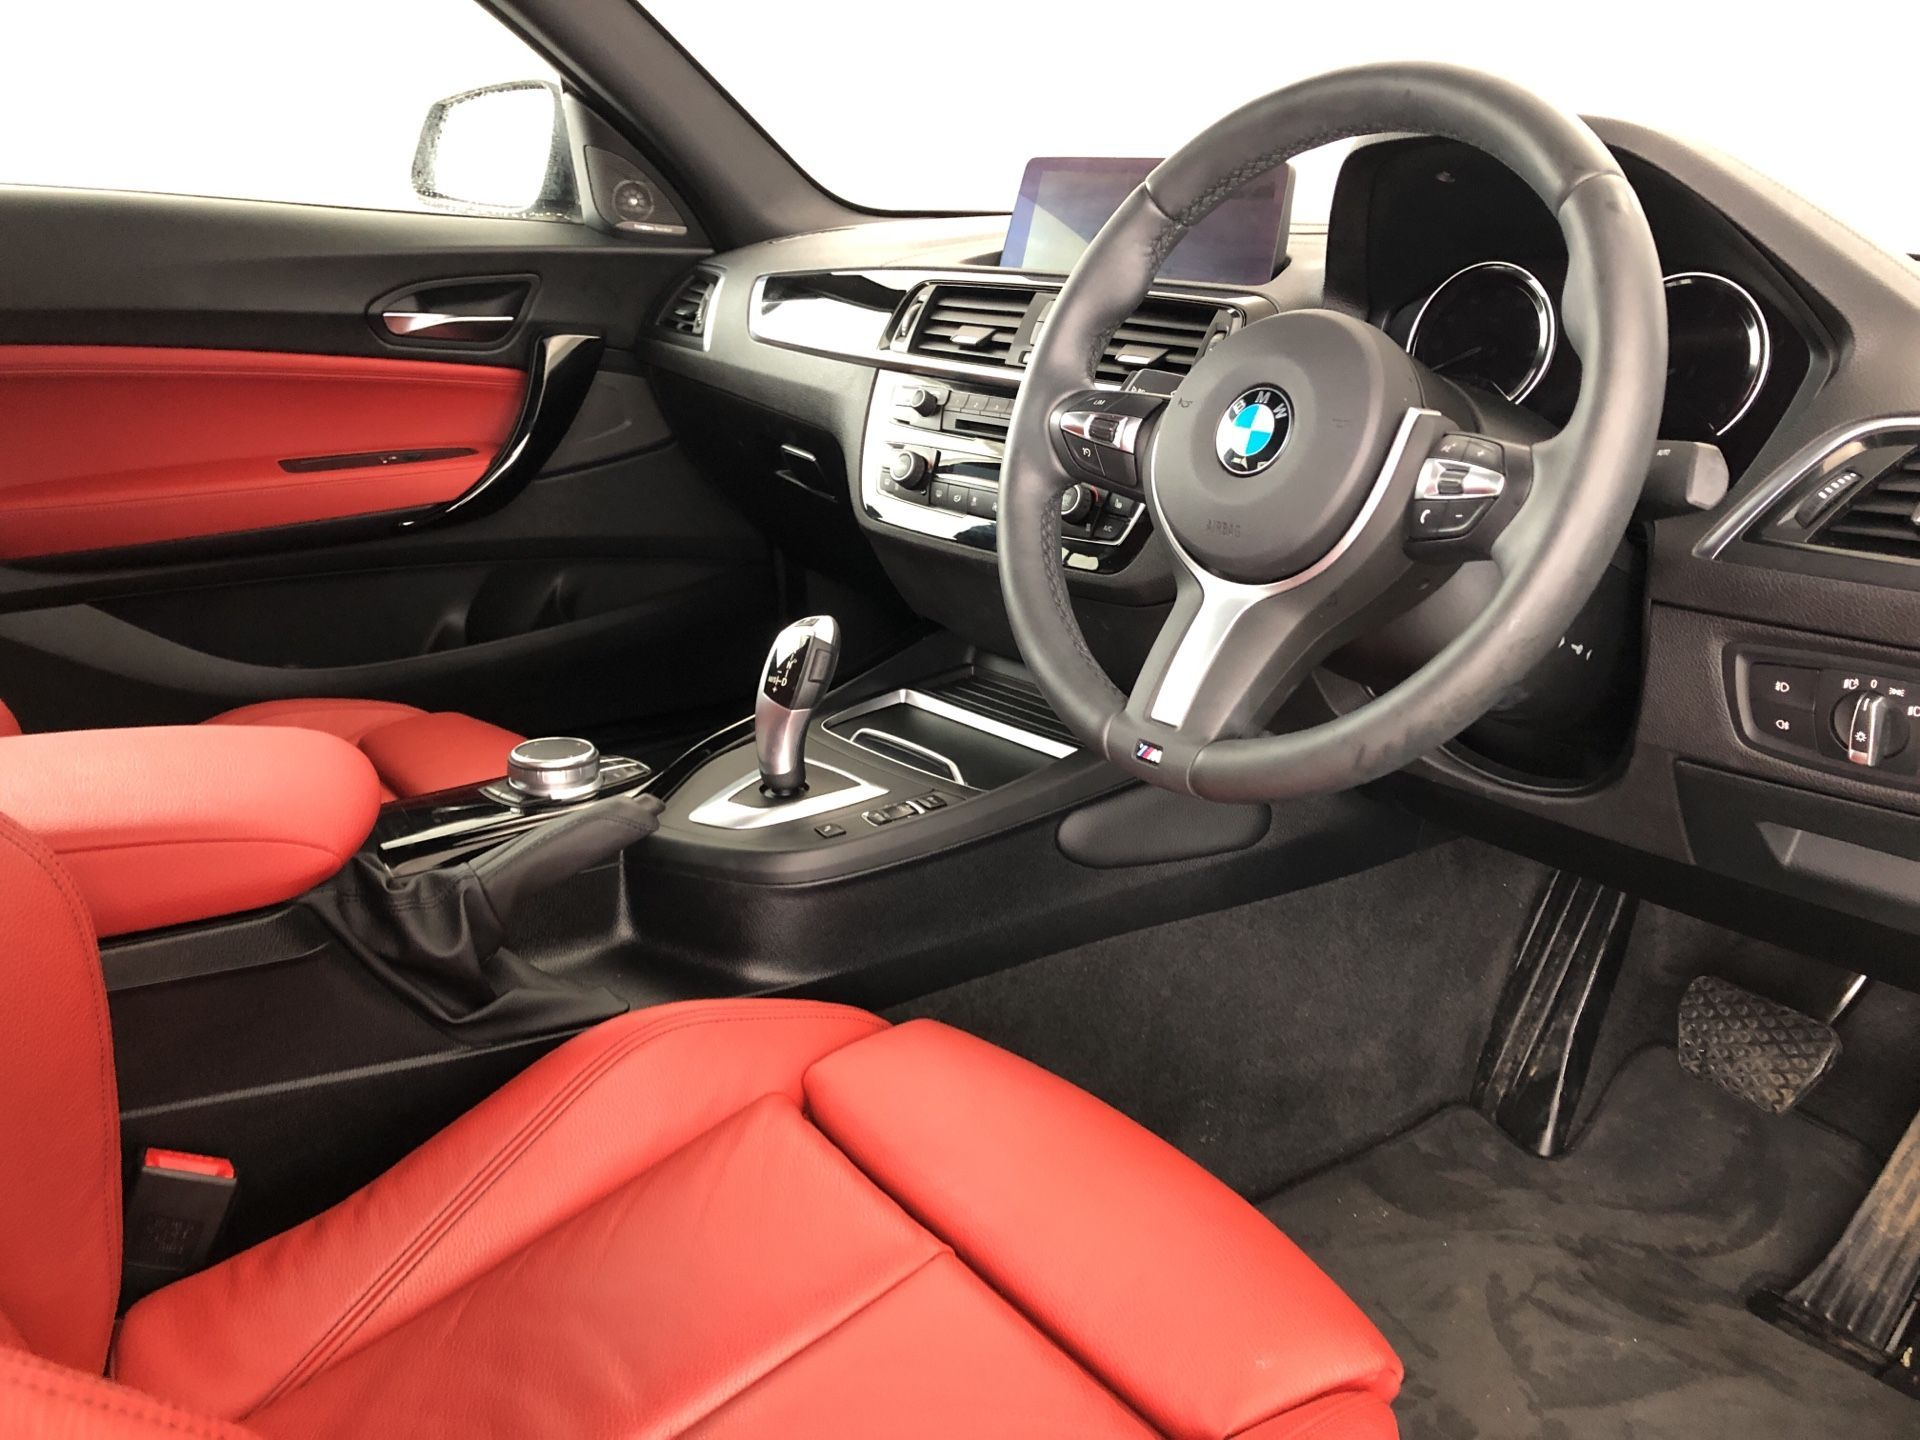 Image 4 - BMW 218d M Sport Coupe (YJ19MMP)